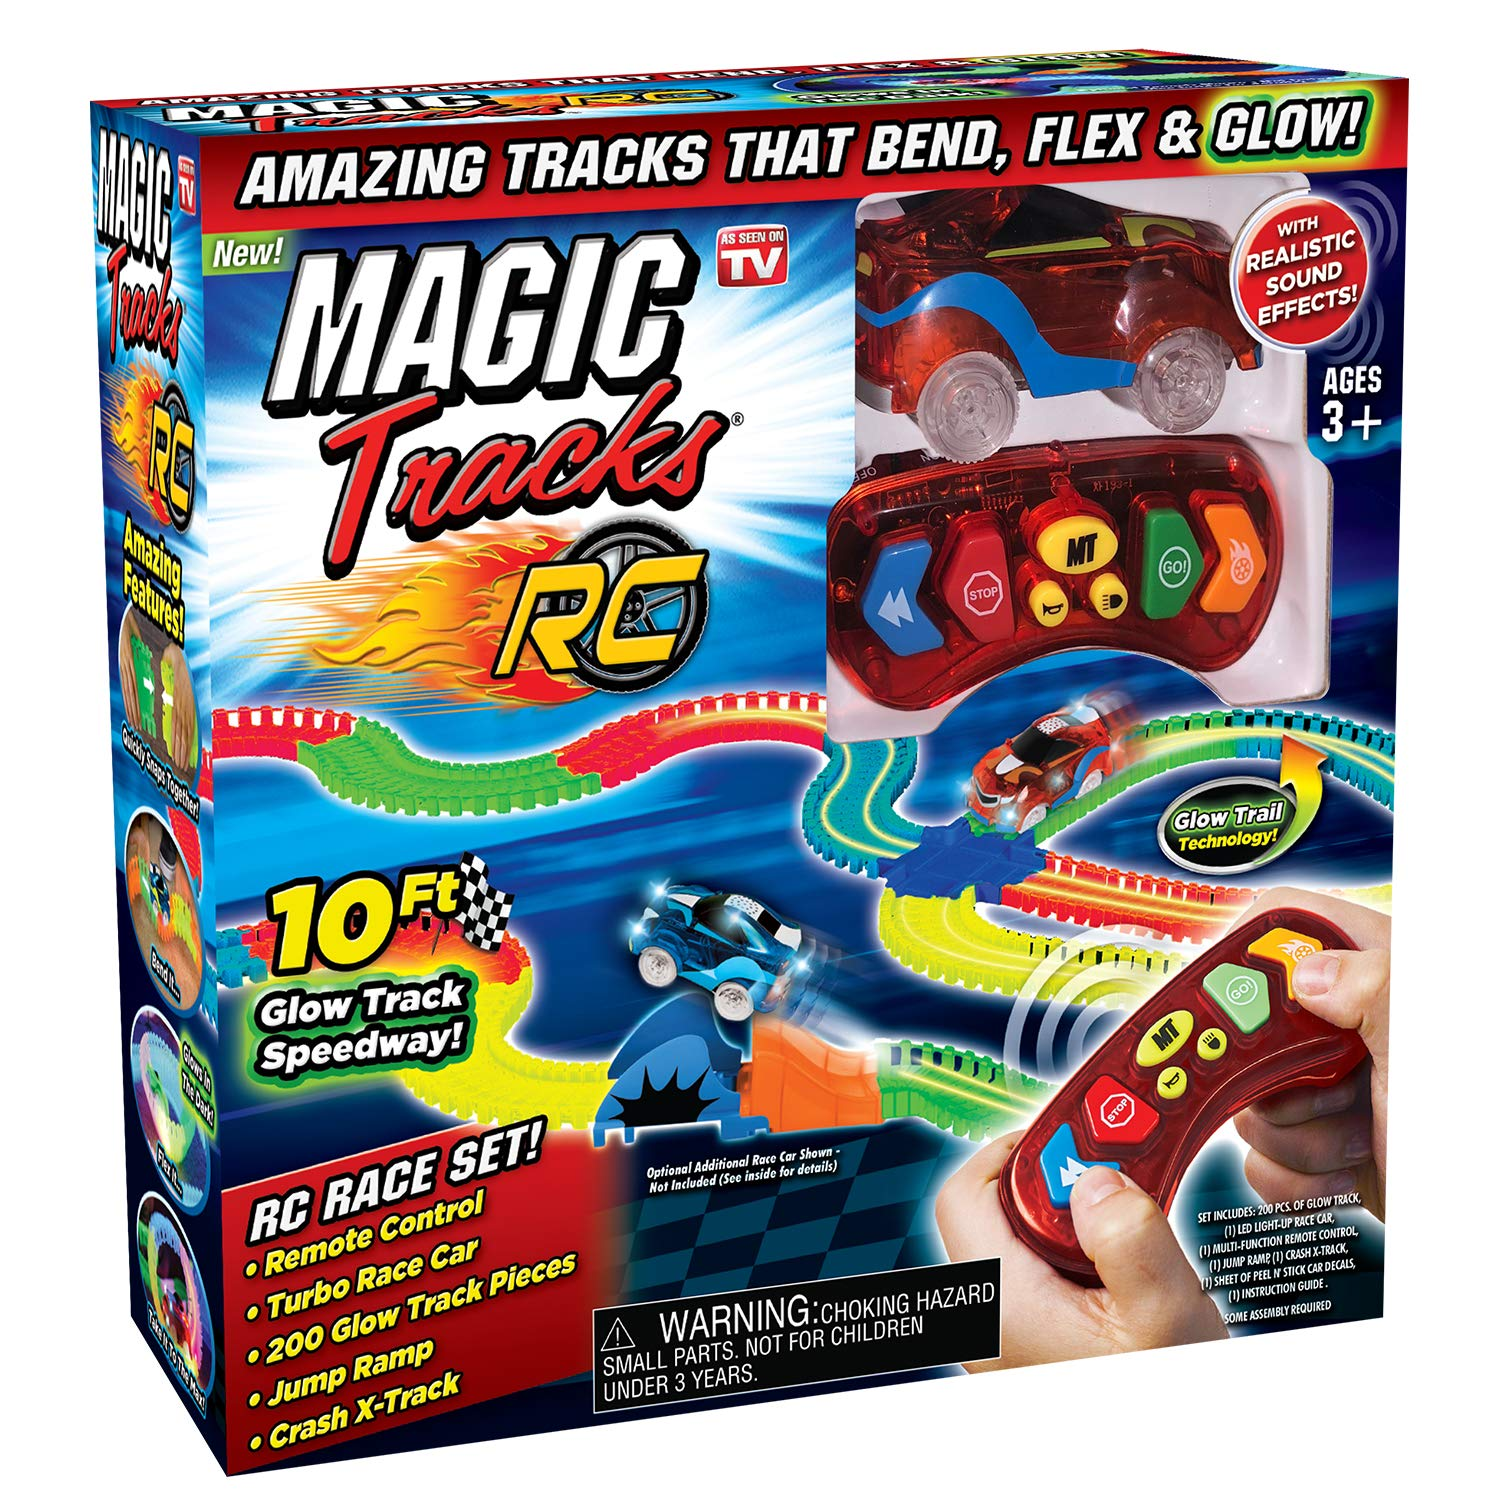 Ontel Magic Tracks RC with Remote Control Turbo Race Cars and 10 ft of Flexible, Bendable Glow in the Dark Racetrack, As Seen on TV by Ontel